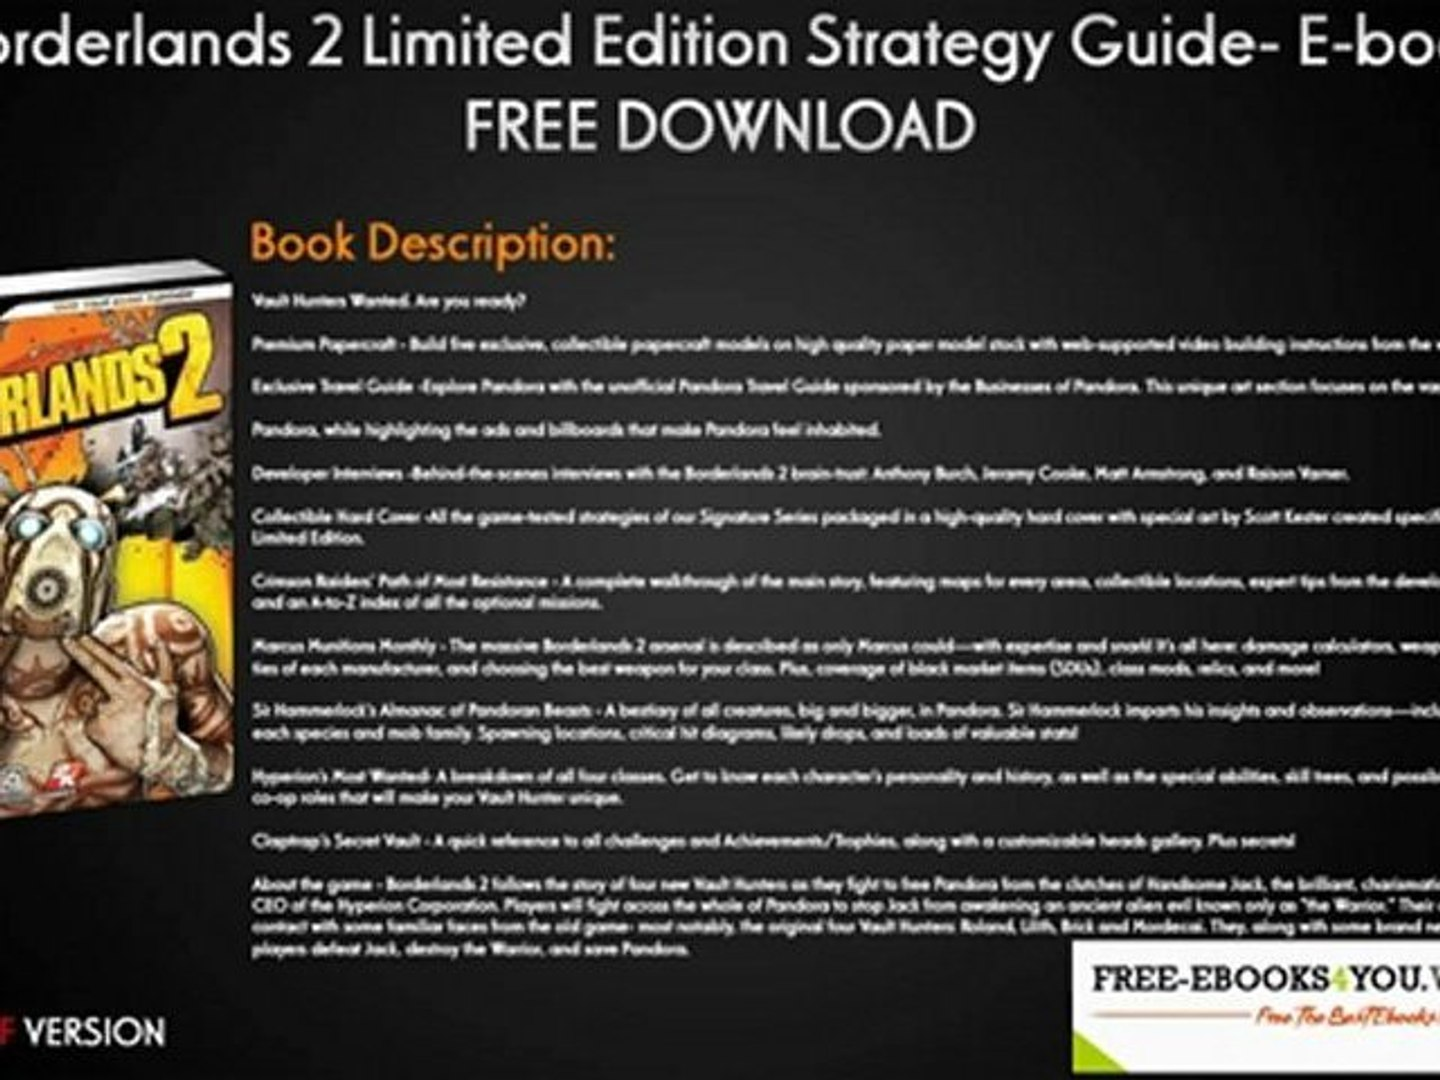 Borderlands 2 Limited Edition Strategy Guide- Ebook Free Download!